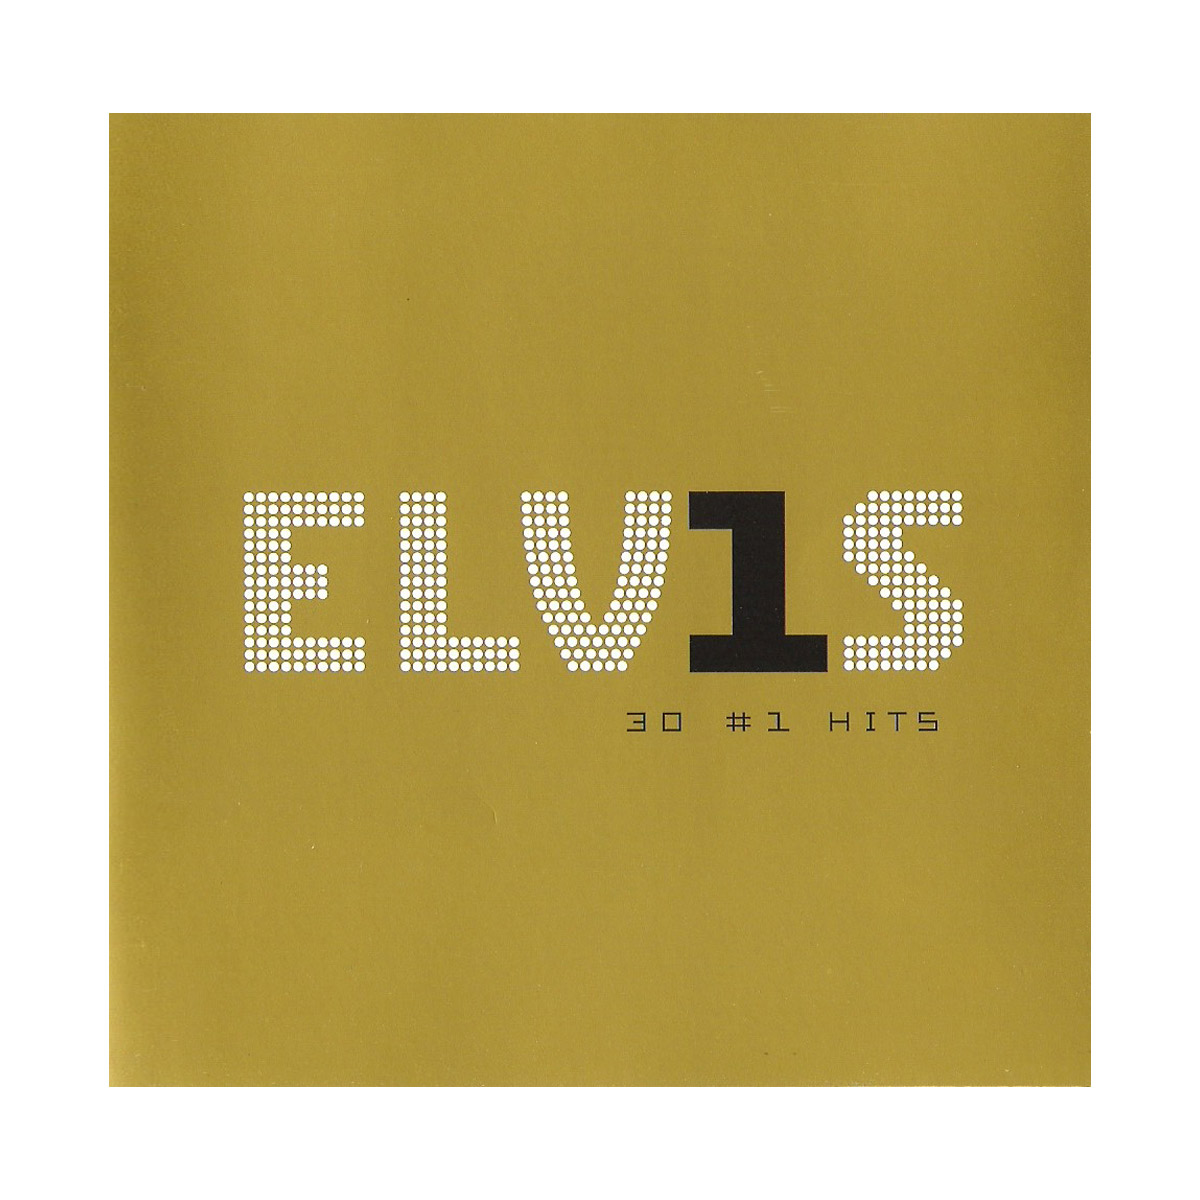 CD Elvis - 30 #1 Hits